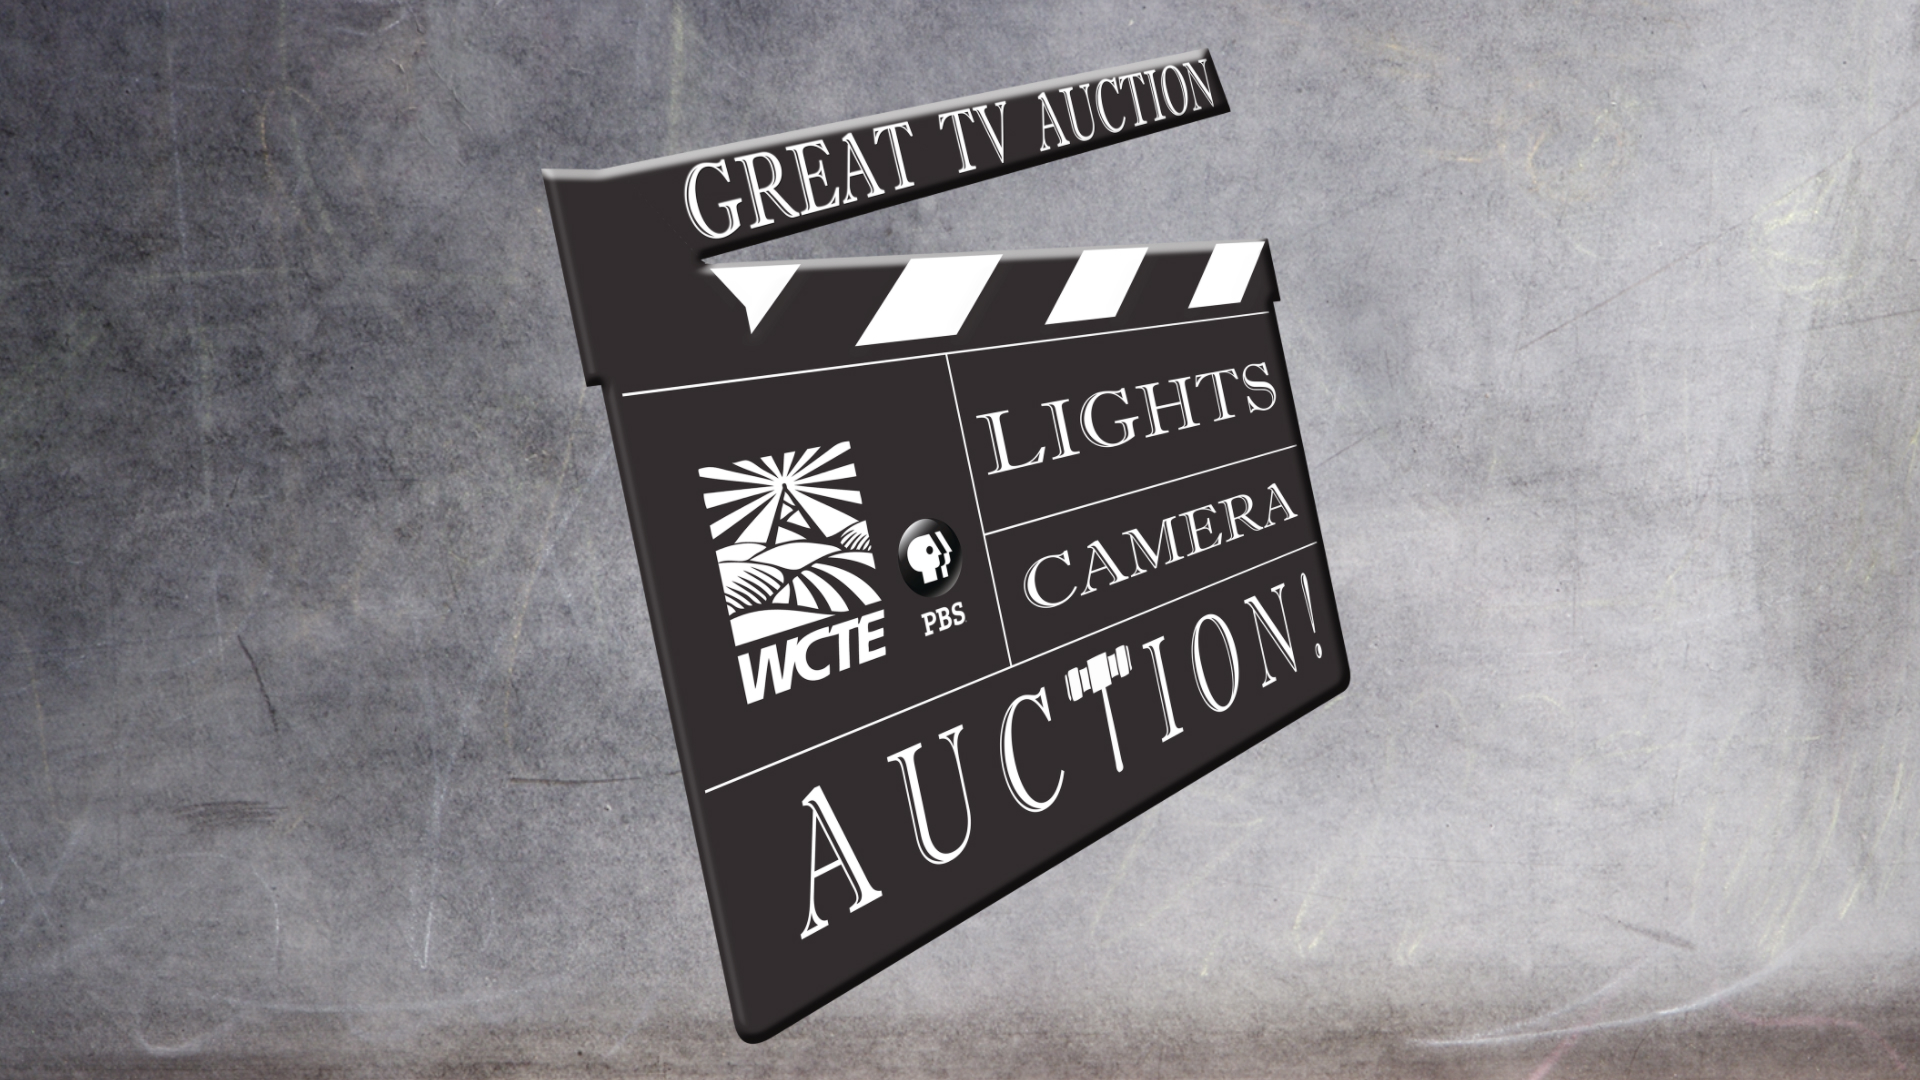 Great TV Auction